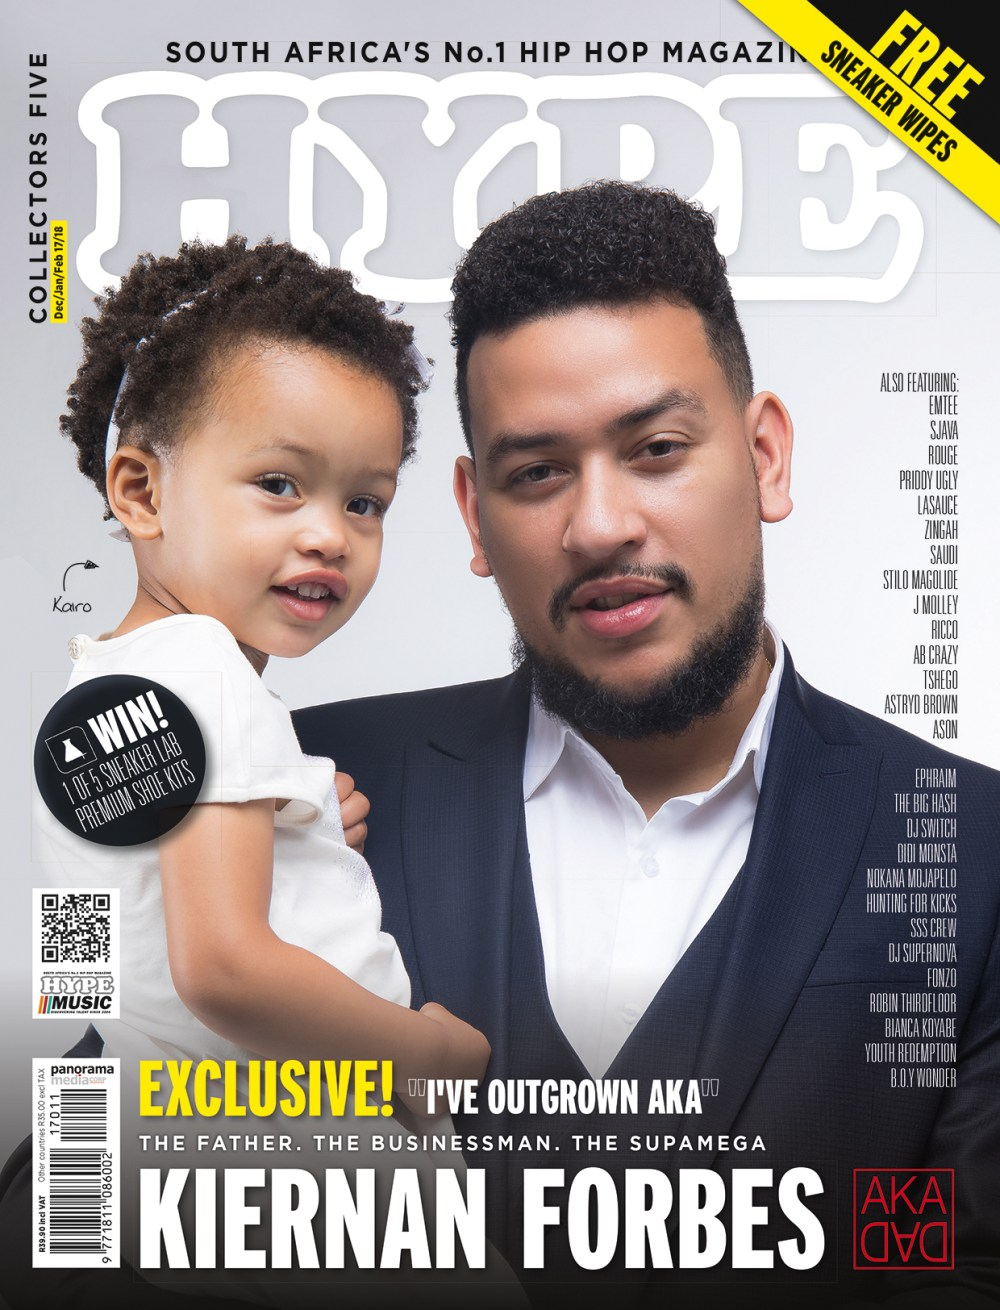 HYPE Magazine Collectors Five Ft. Kiernan & Kairo Forbes HYPE77 OFC featuring